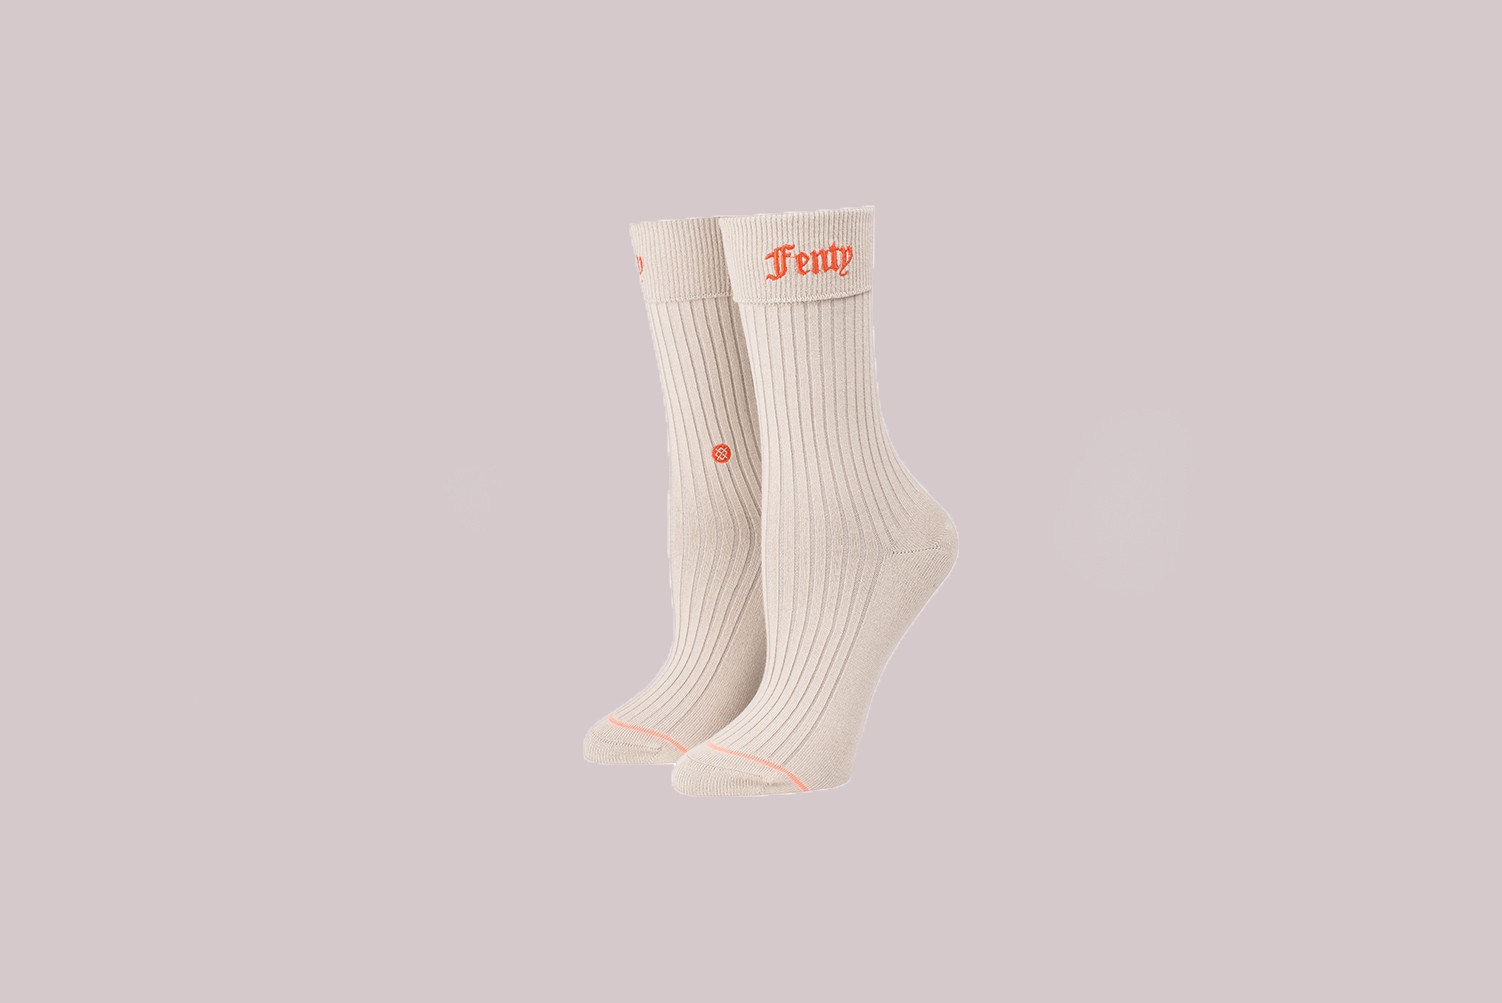 Stance x Rihanna Women Socks by Fenty